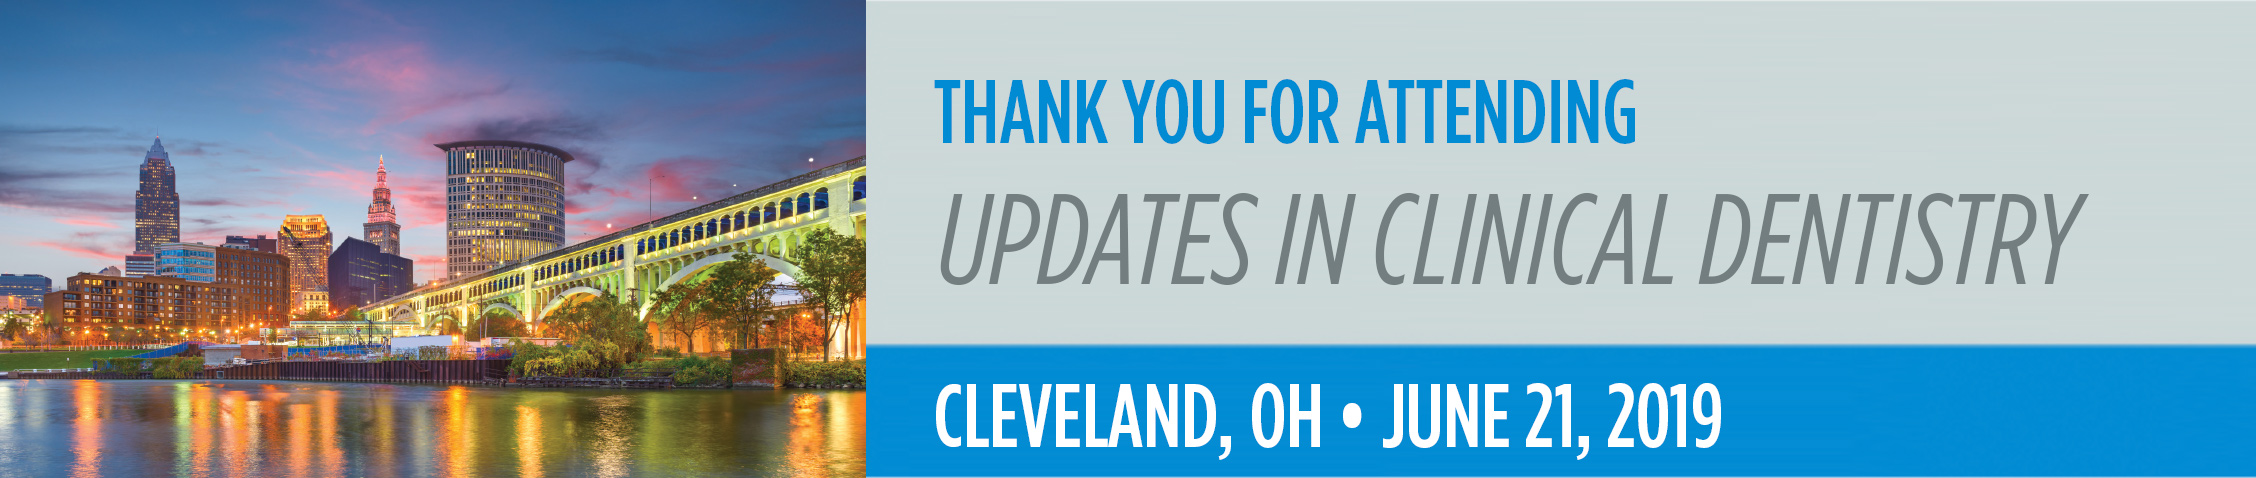 Updates in Clinical Dentistry - Cleveland, OH Event Image